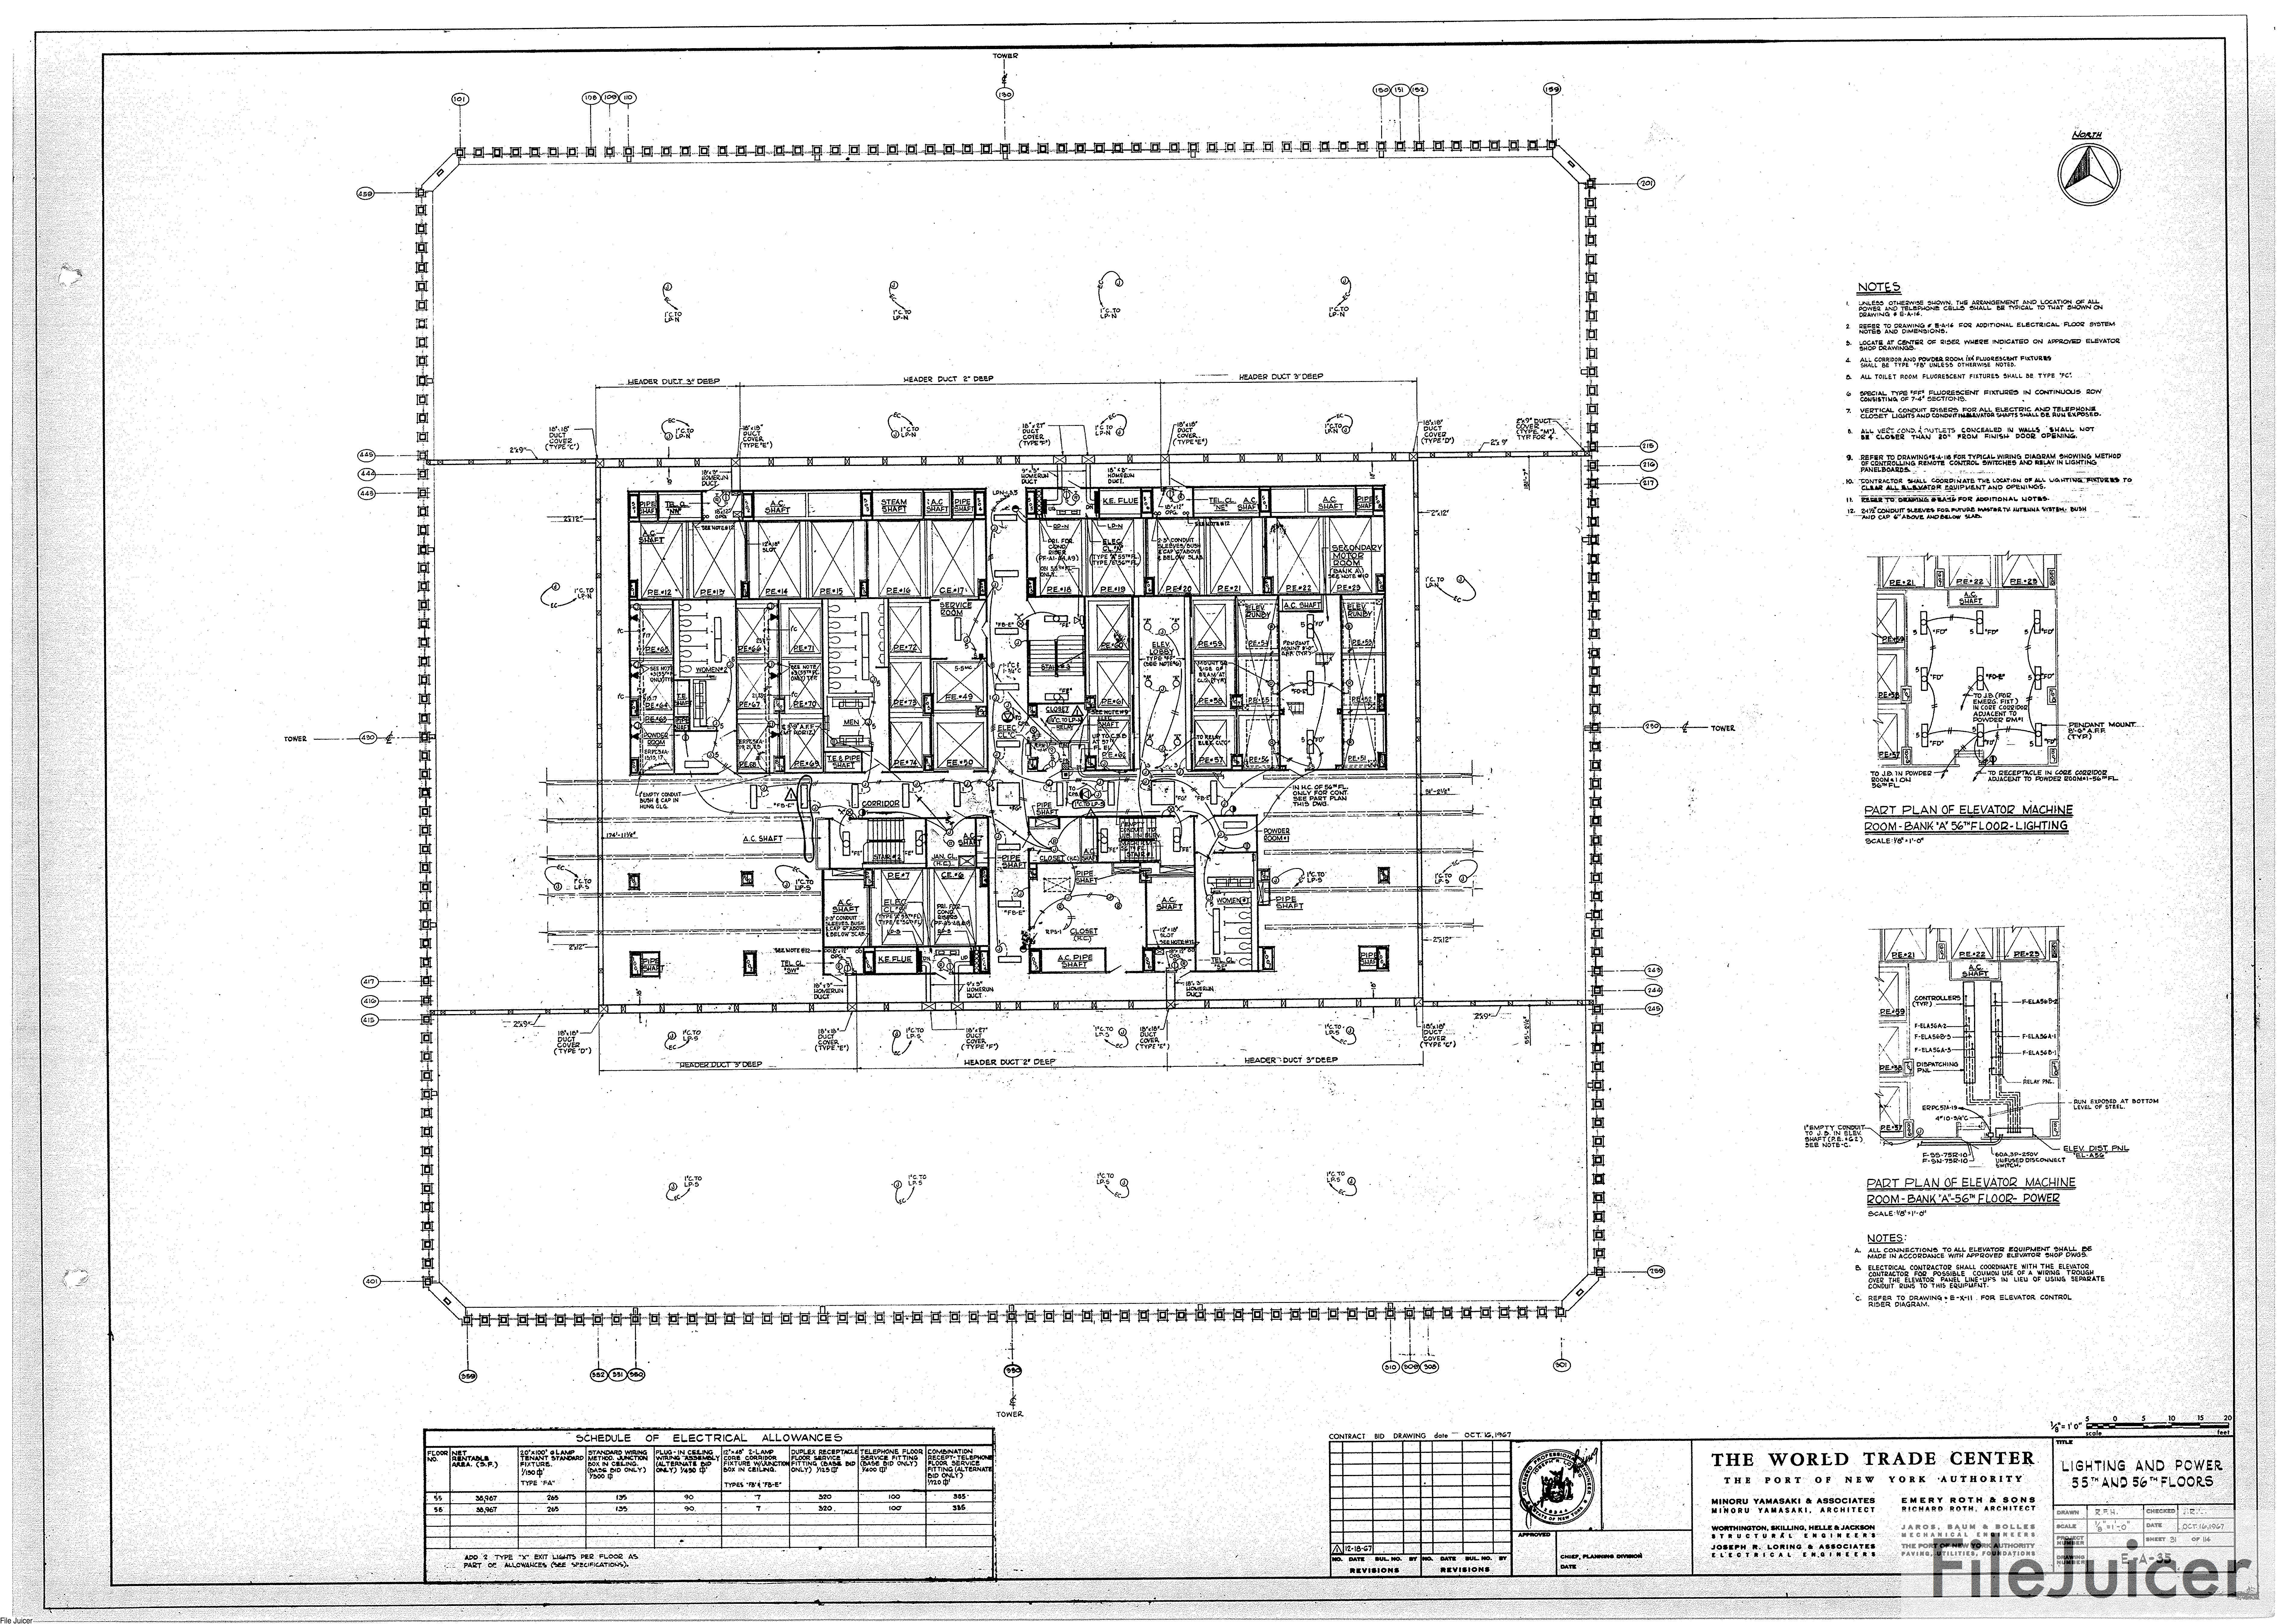 Table Of World Trade Center Tower A Drawings Wiring Diagram Control Dwgs Lighting Power 55th 56thfloors